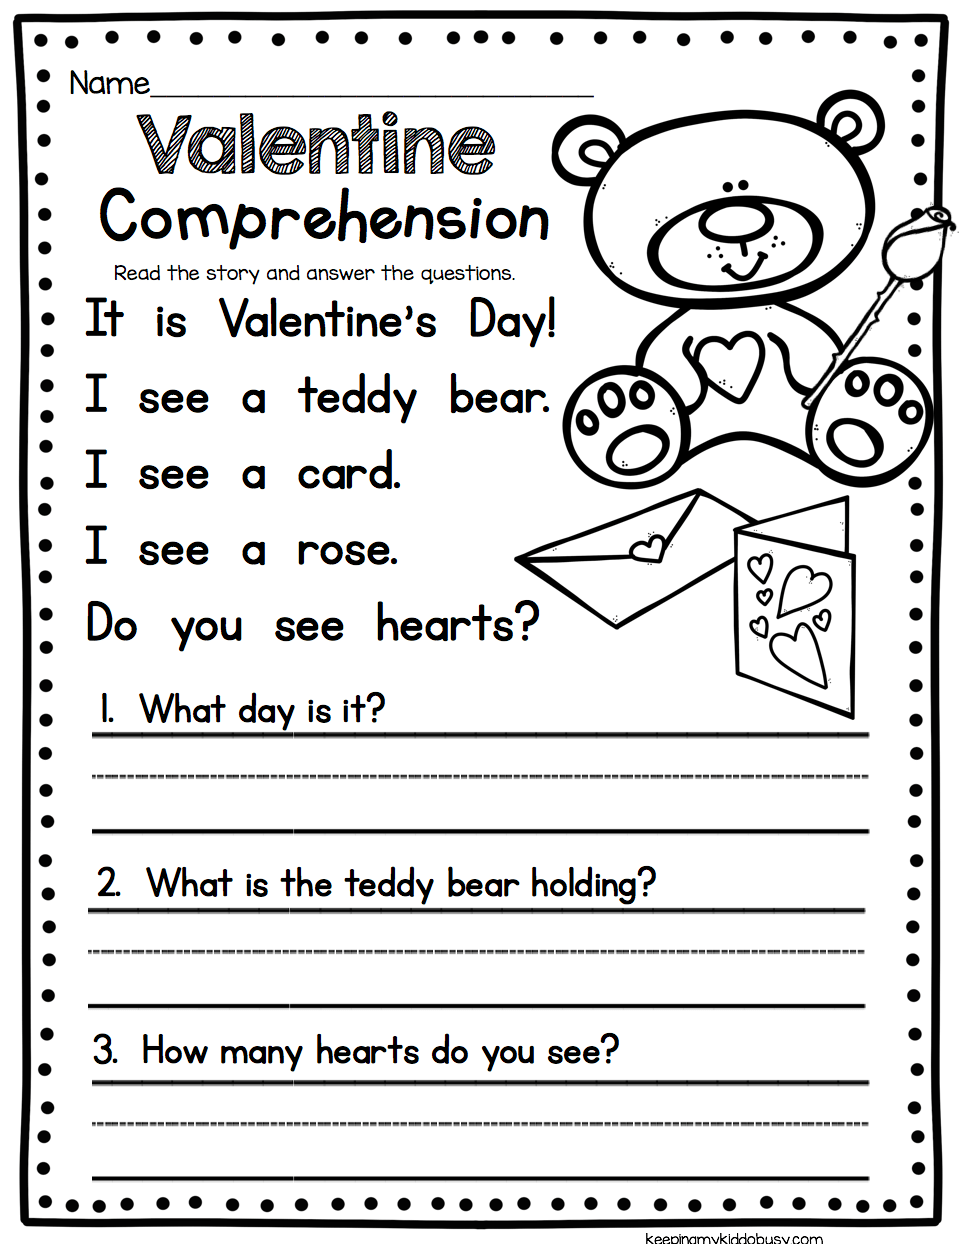 Valentine S Day Comprehension Worksheet Easy Reading Activity For Kindergarten Or Fi Reading Comprehension Worksheets Reading Worksheets Valentine Worksheets